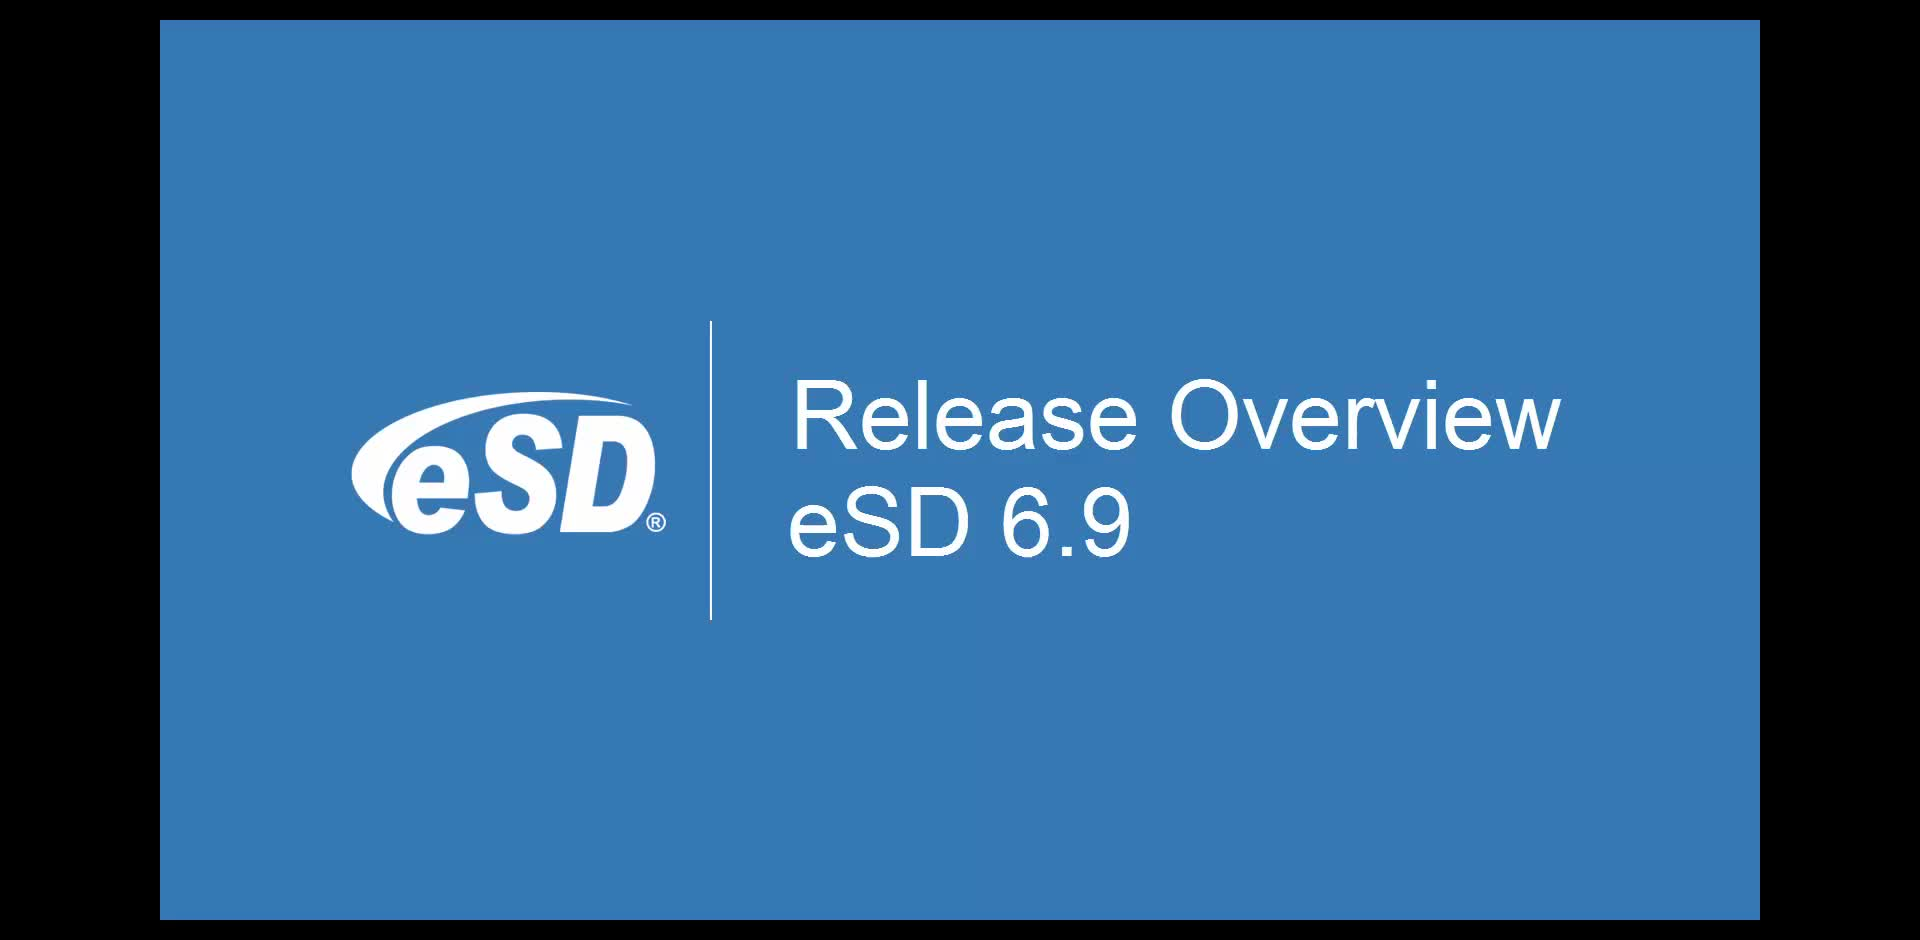 eSD 6.9 Release Overview